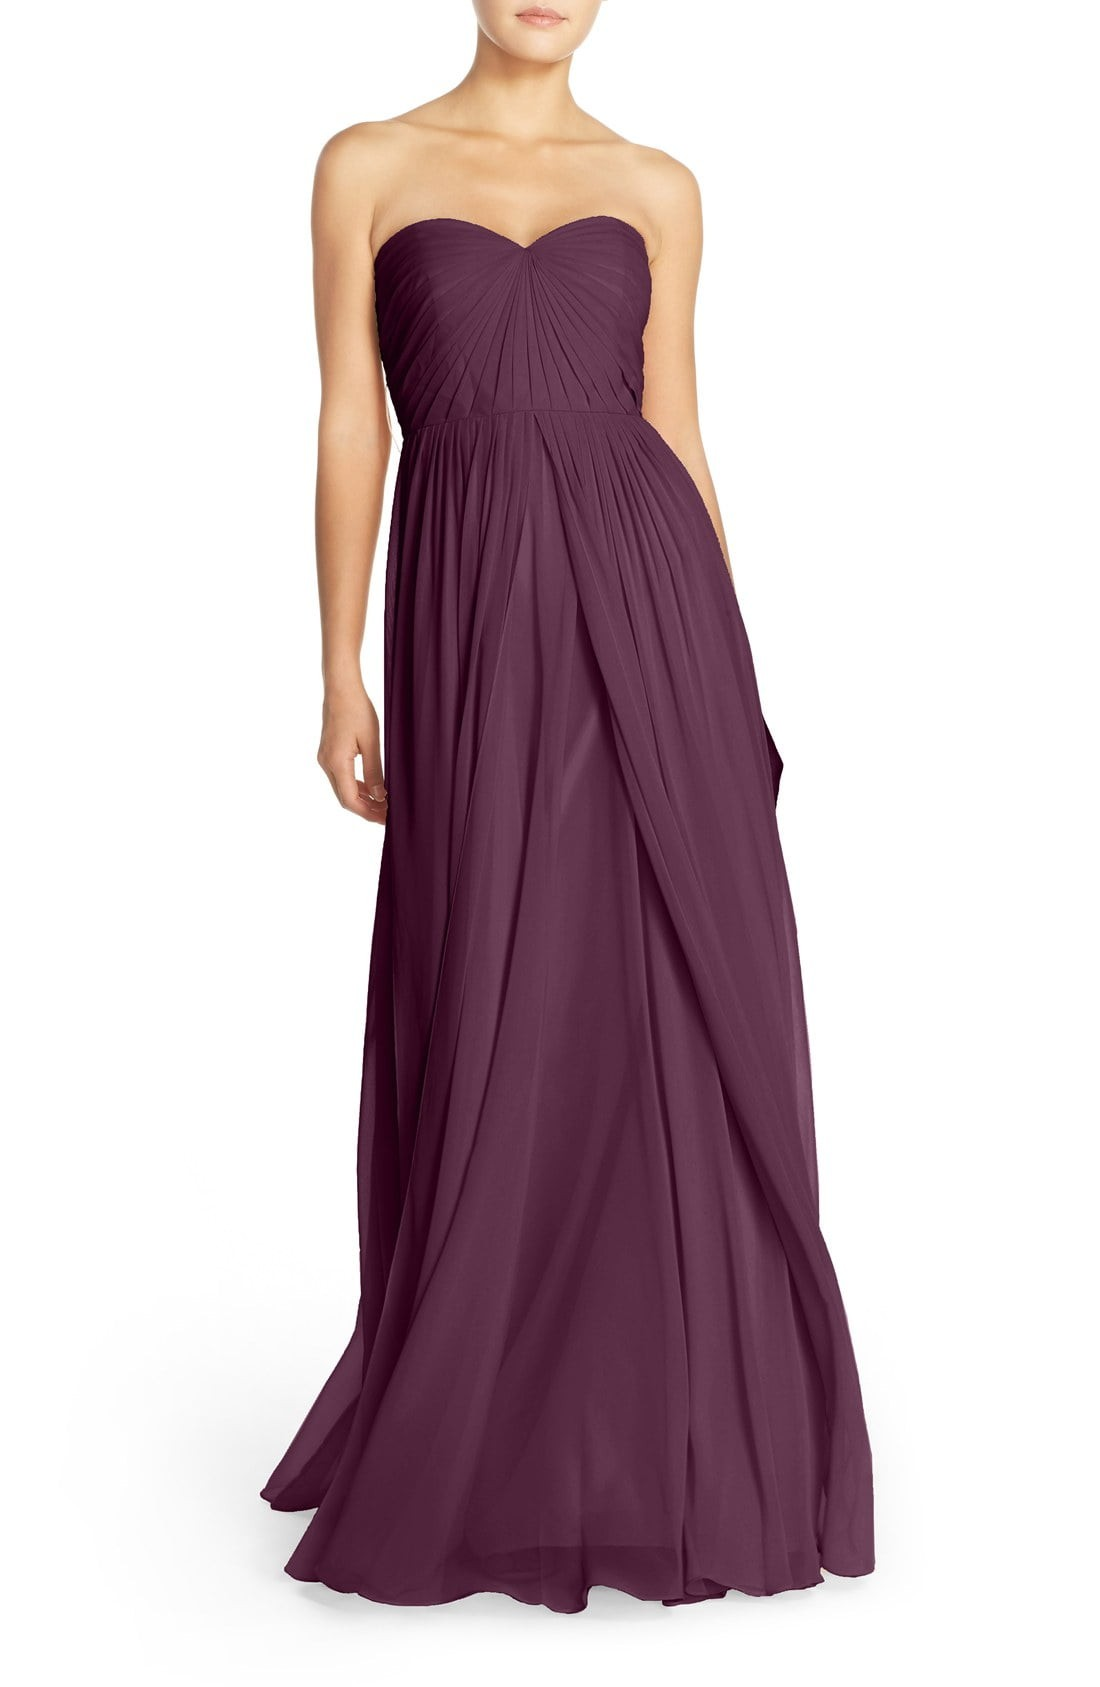 Long wine colored bridesmaid dress dress for the wedding shop the look wine colored bridesmaid dresses ombrellifo Choice Image